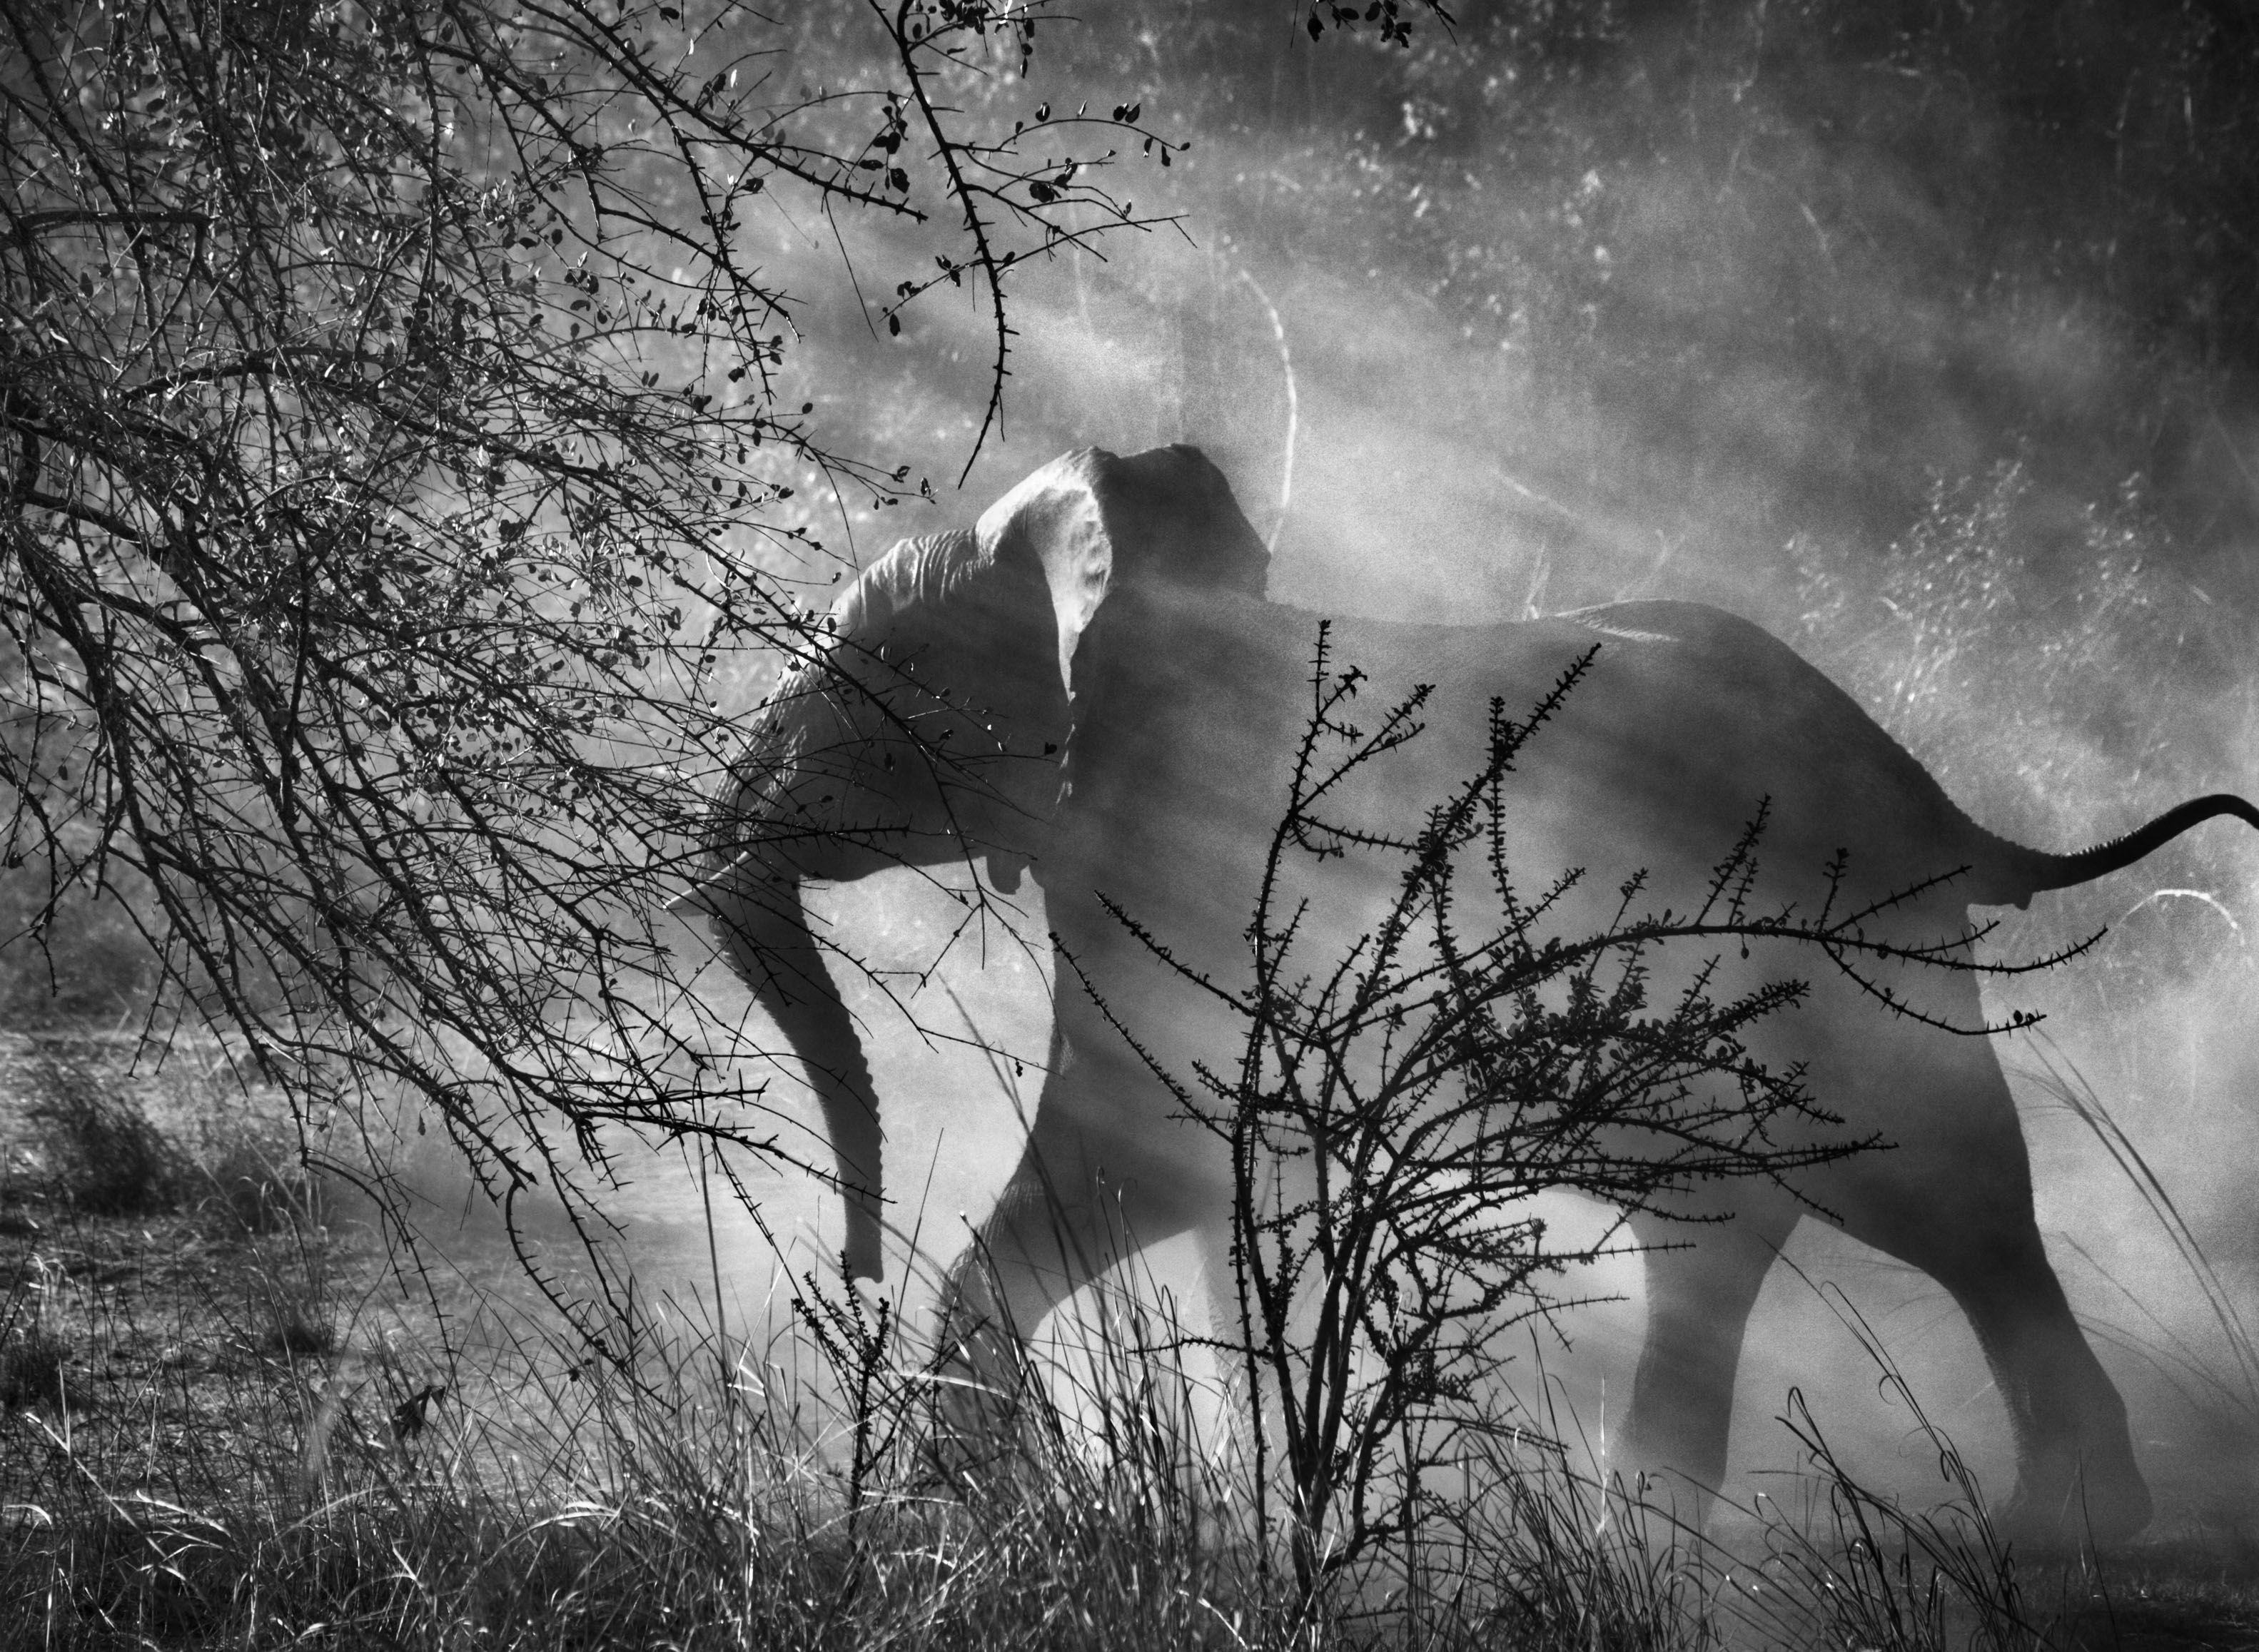 7._Salgado_Since_elephants_are_hunted_by_poachers_in_Zambia